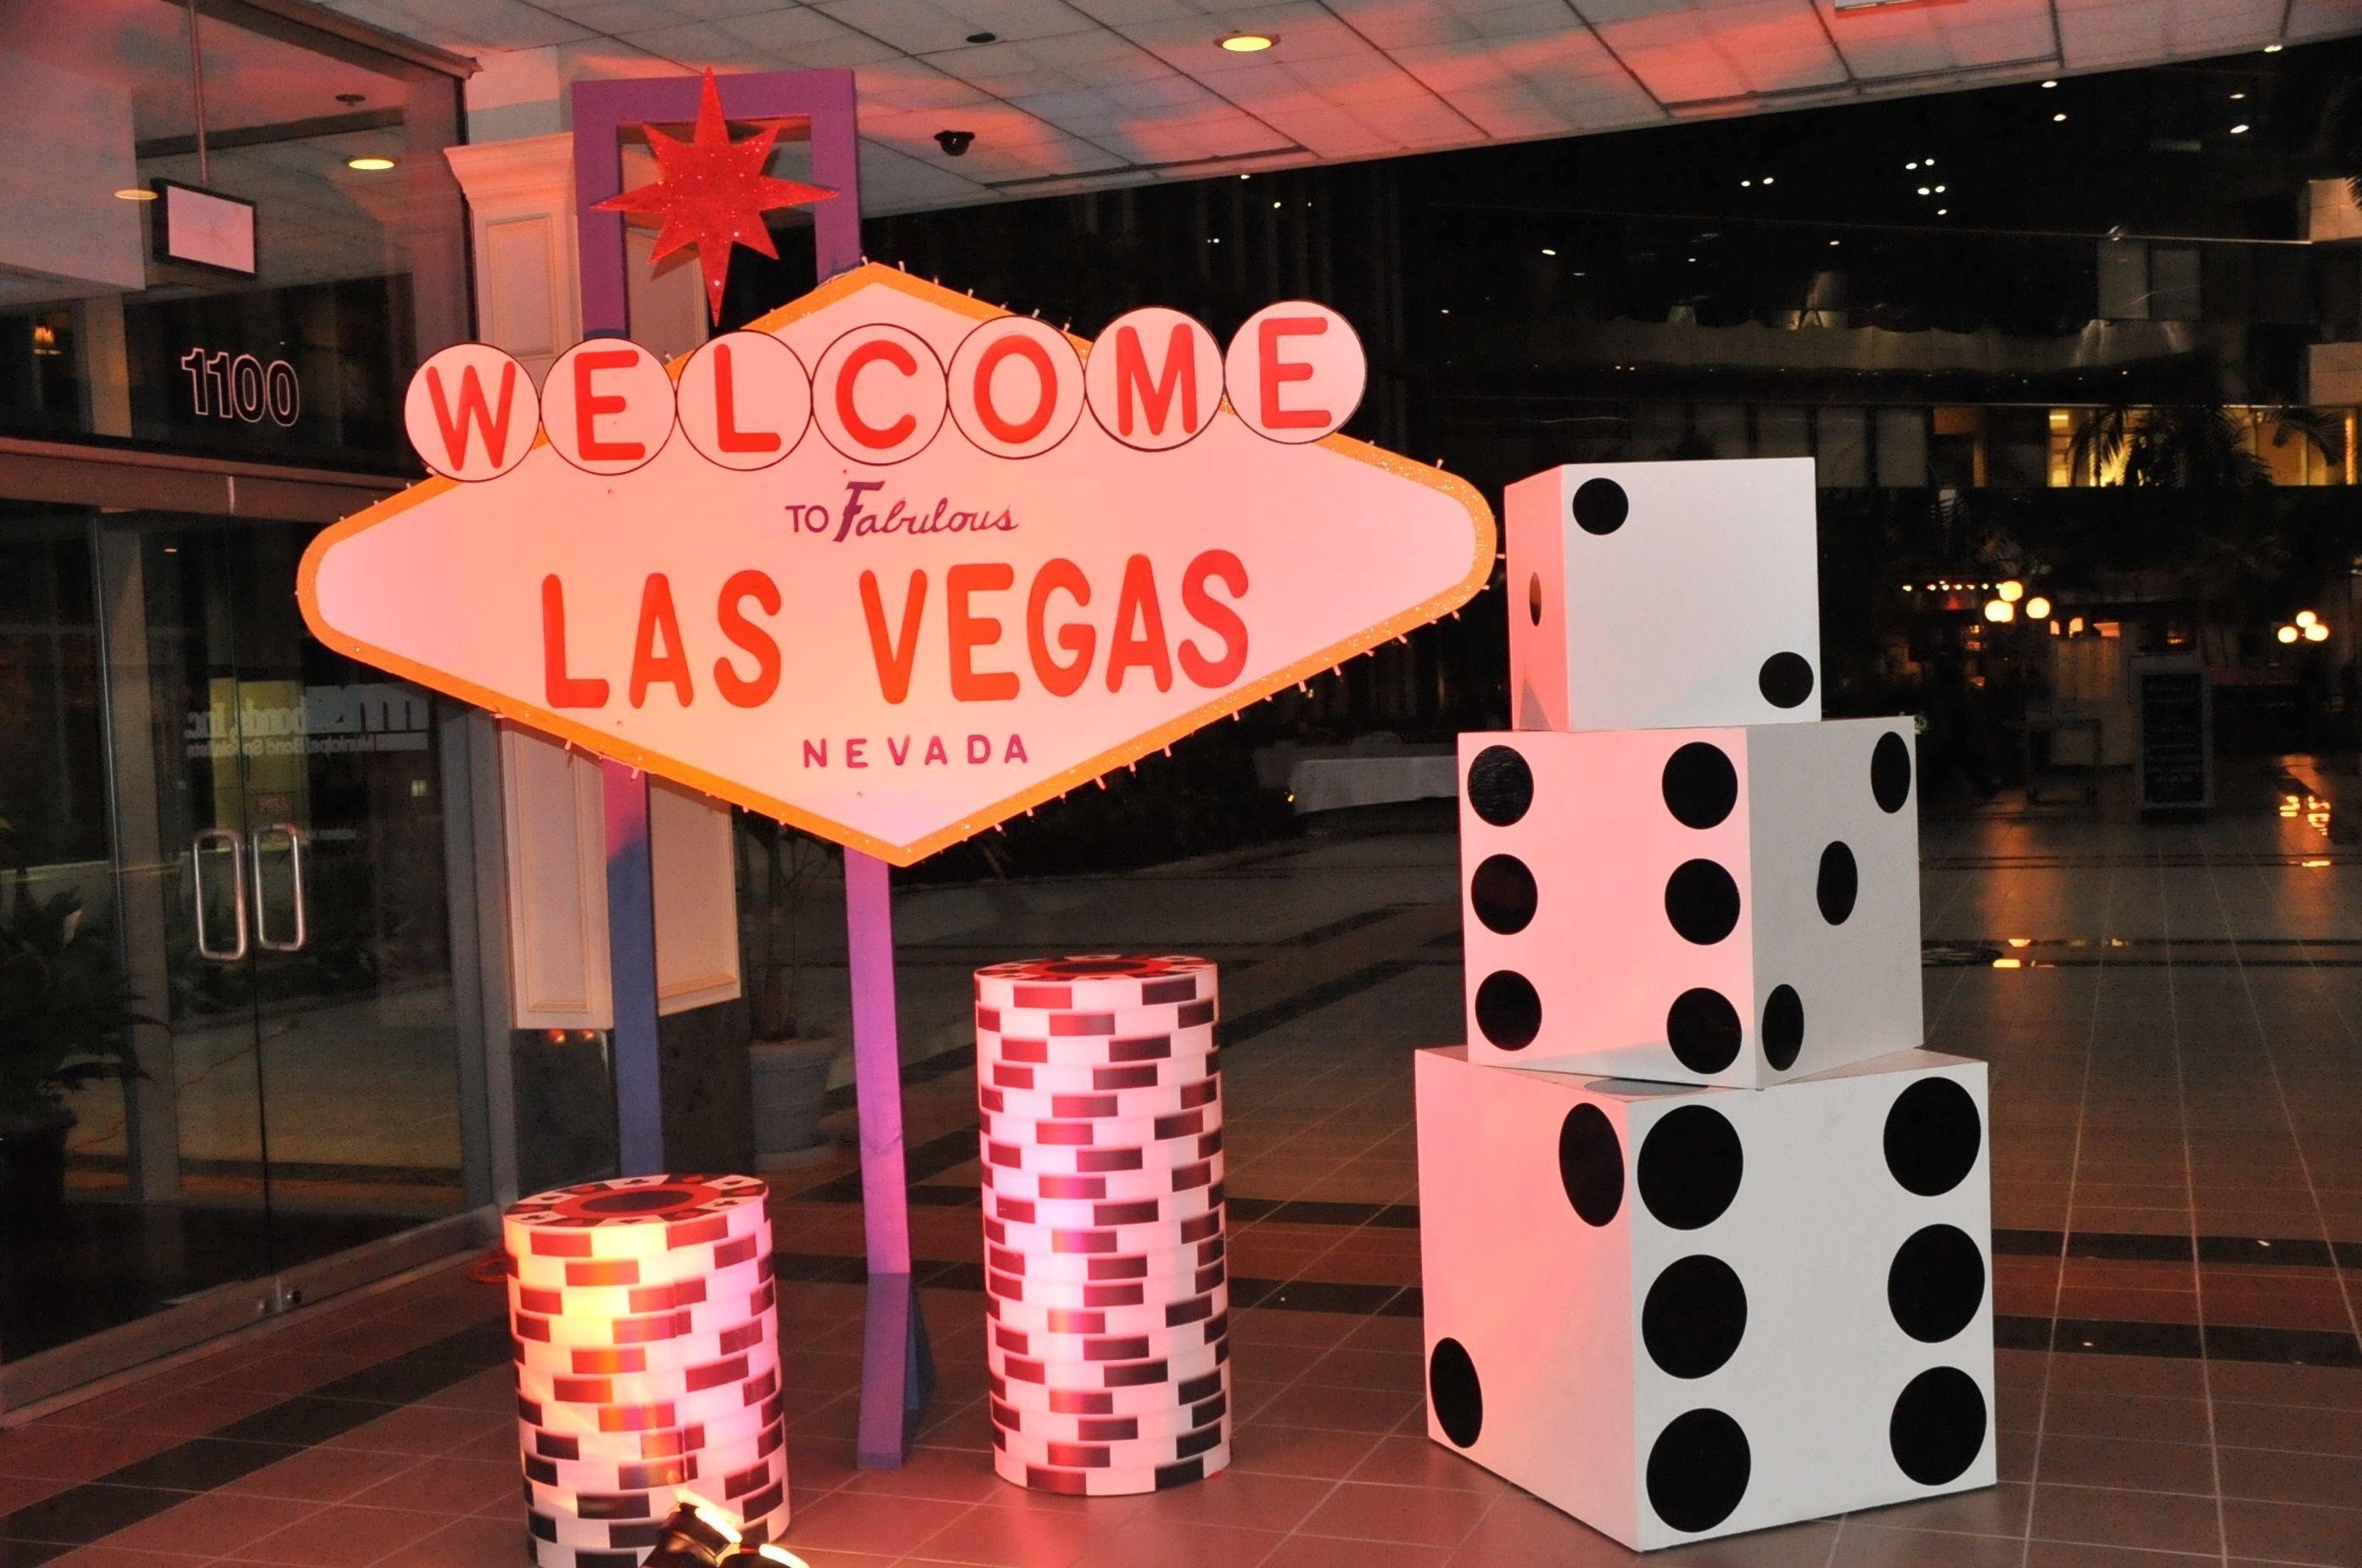 10 Attractive Kids Birthday Party Ideas Las Vegas vegas themed party private casino casino parties in palm beach 1 2020